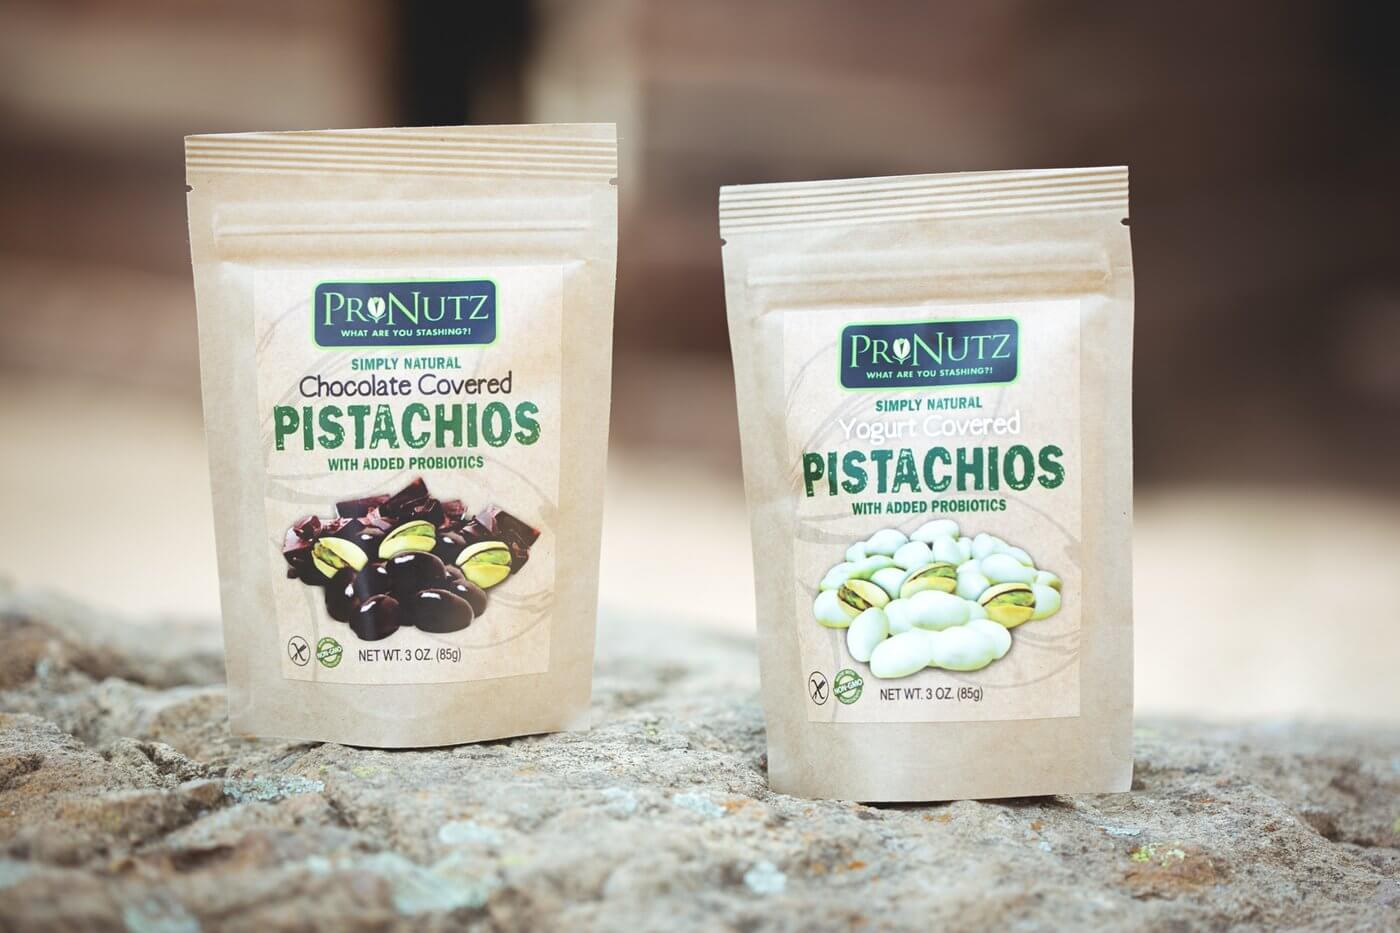 Pronutz Yogurt Covered Pistachios